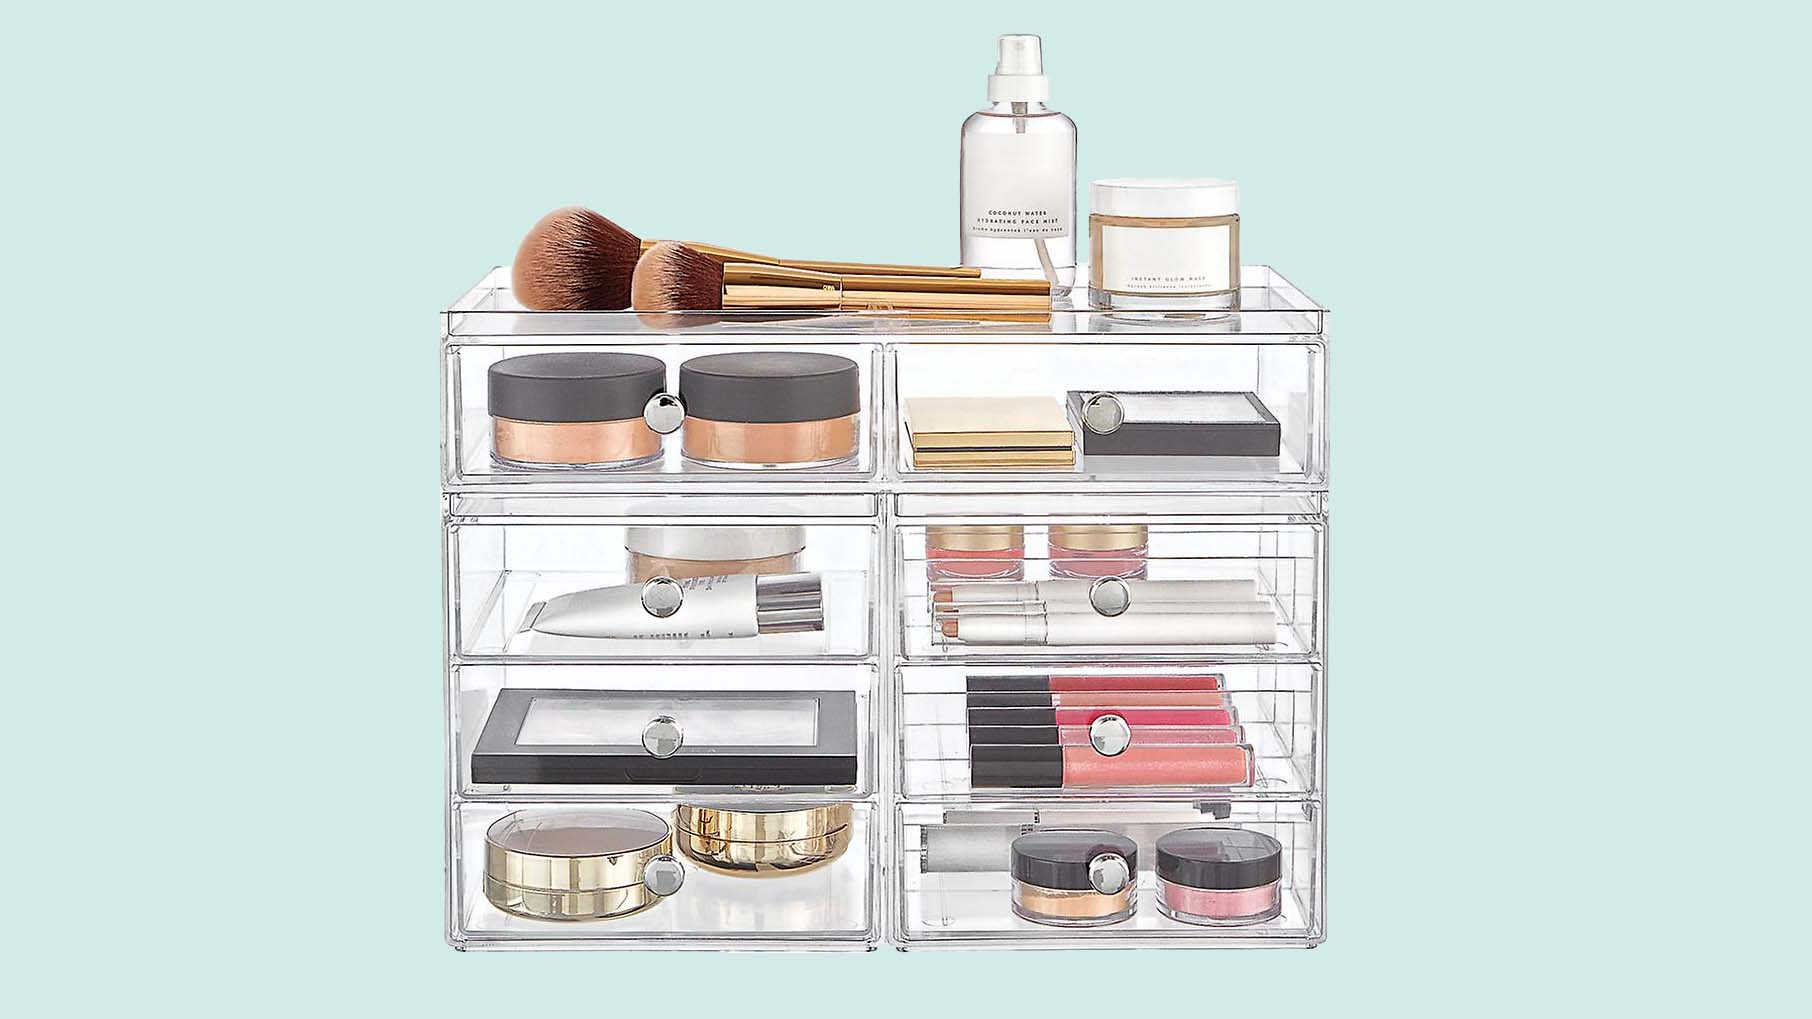 Best Container Store Organizer, According to Real Simple Editors